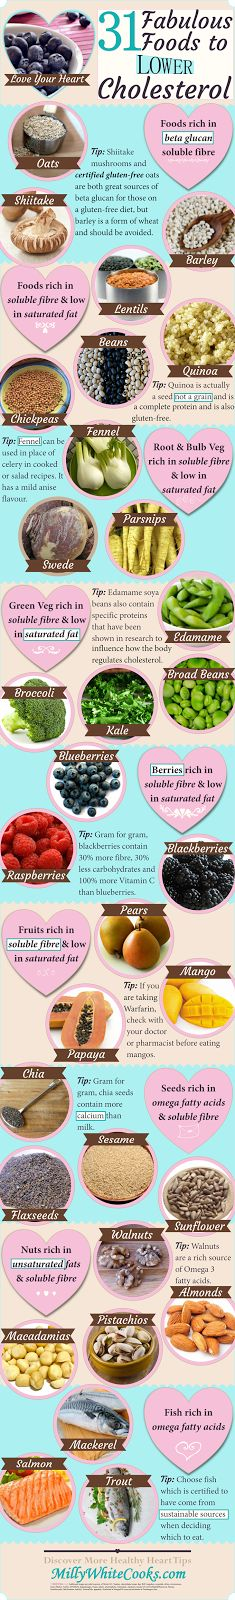 These 31 Fabulous Foods to Lower Cholesterol can actively help to lower cholesterol levels, including rich sources of beta glucan soluble fibre, omega fatty acids, unsaturated fats and foods low in saturated fat.